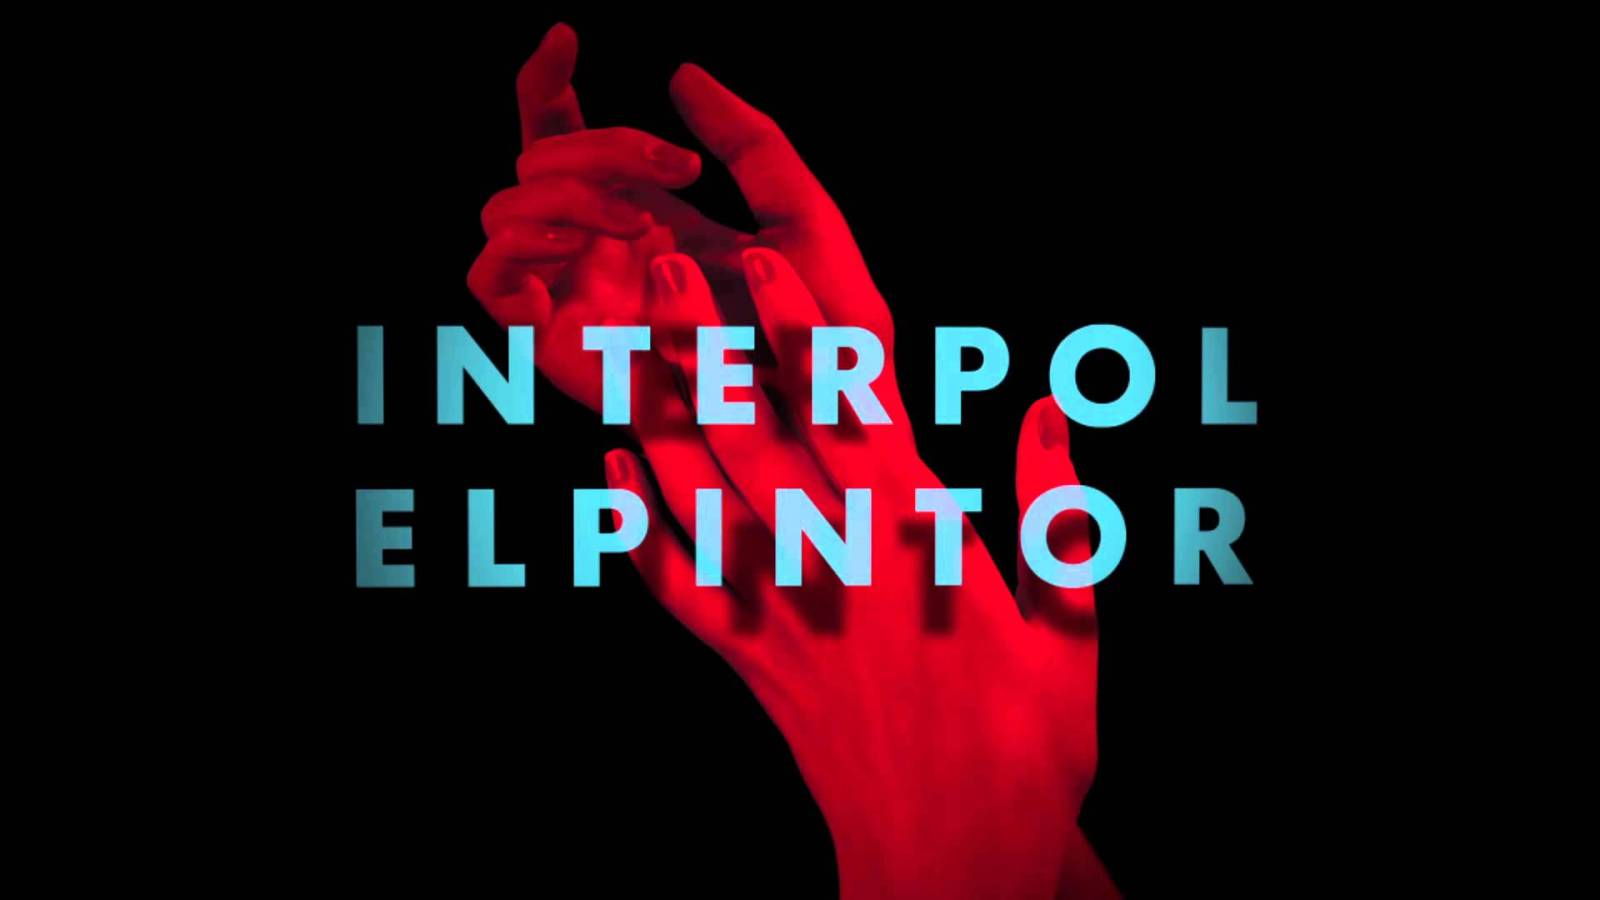 Interpol-El-Pintor-e1421896624895.jpg